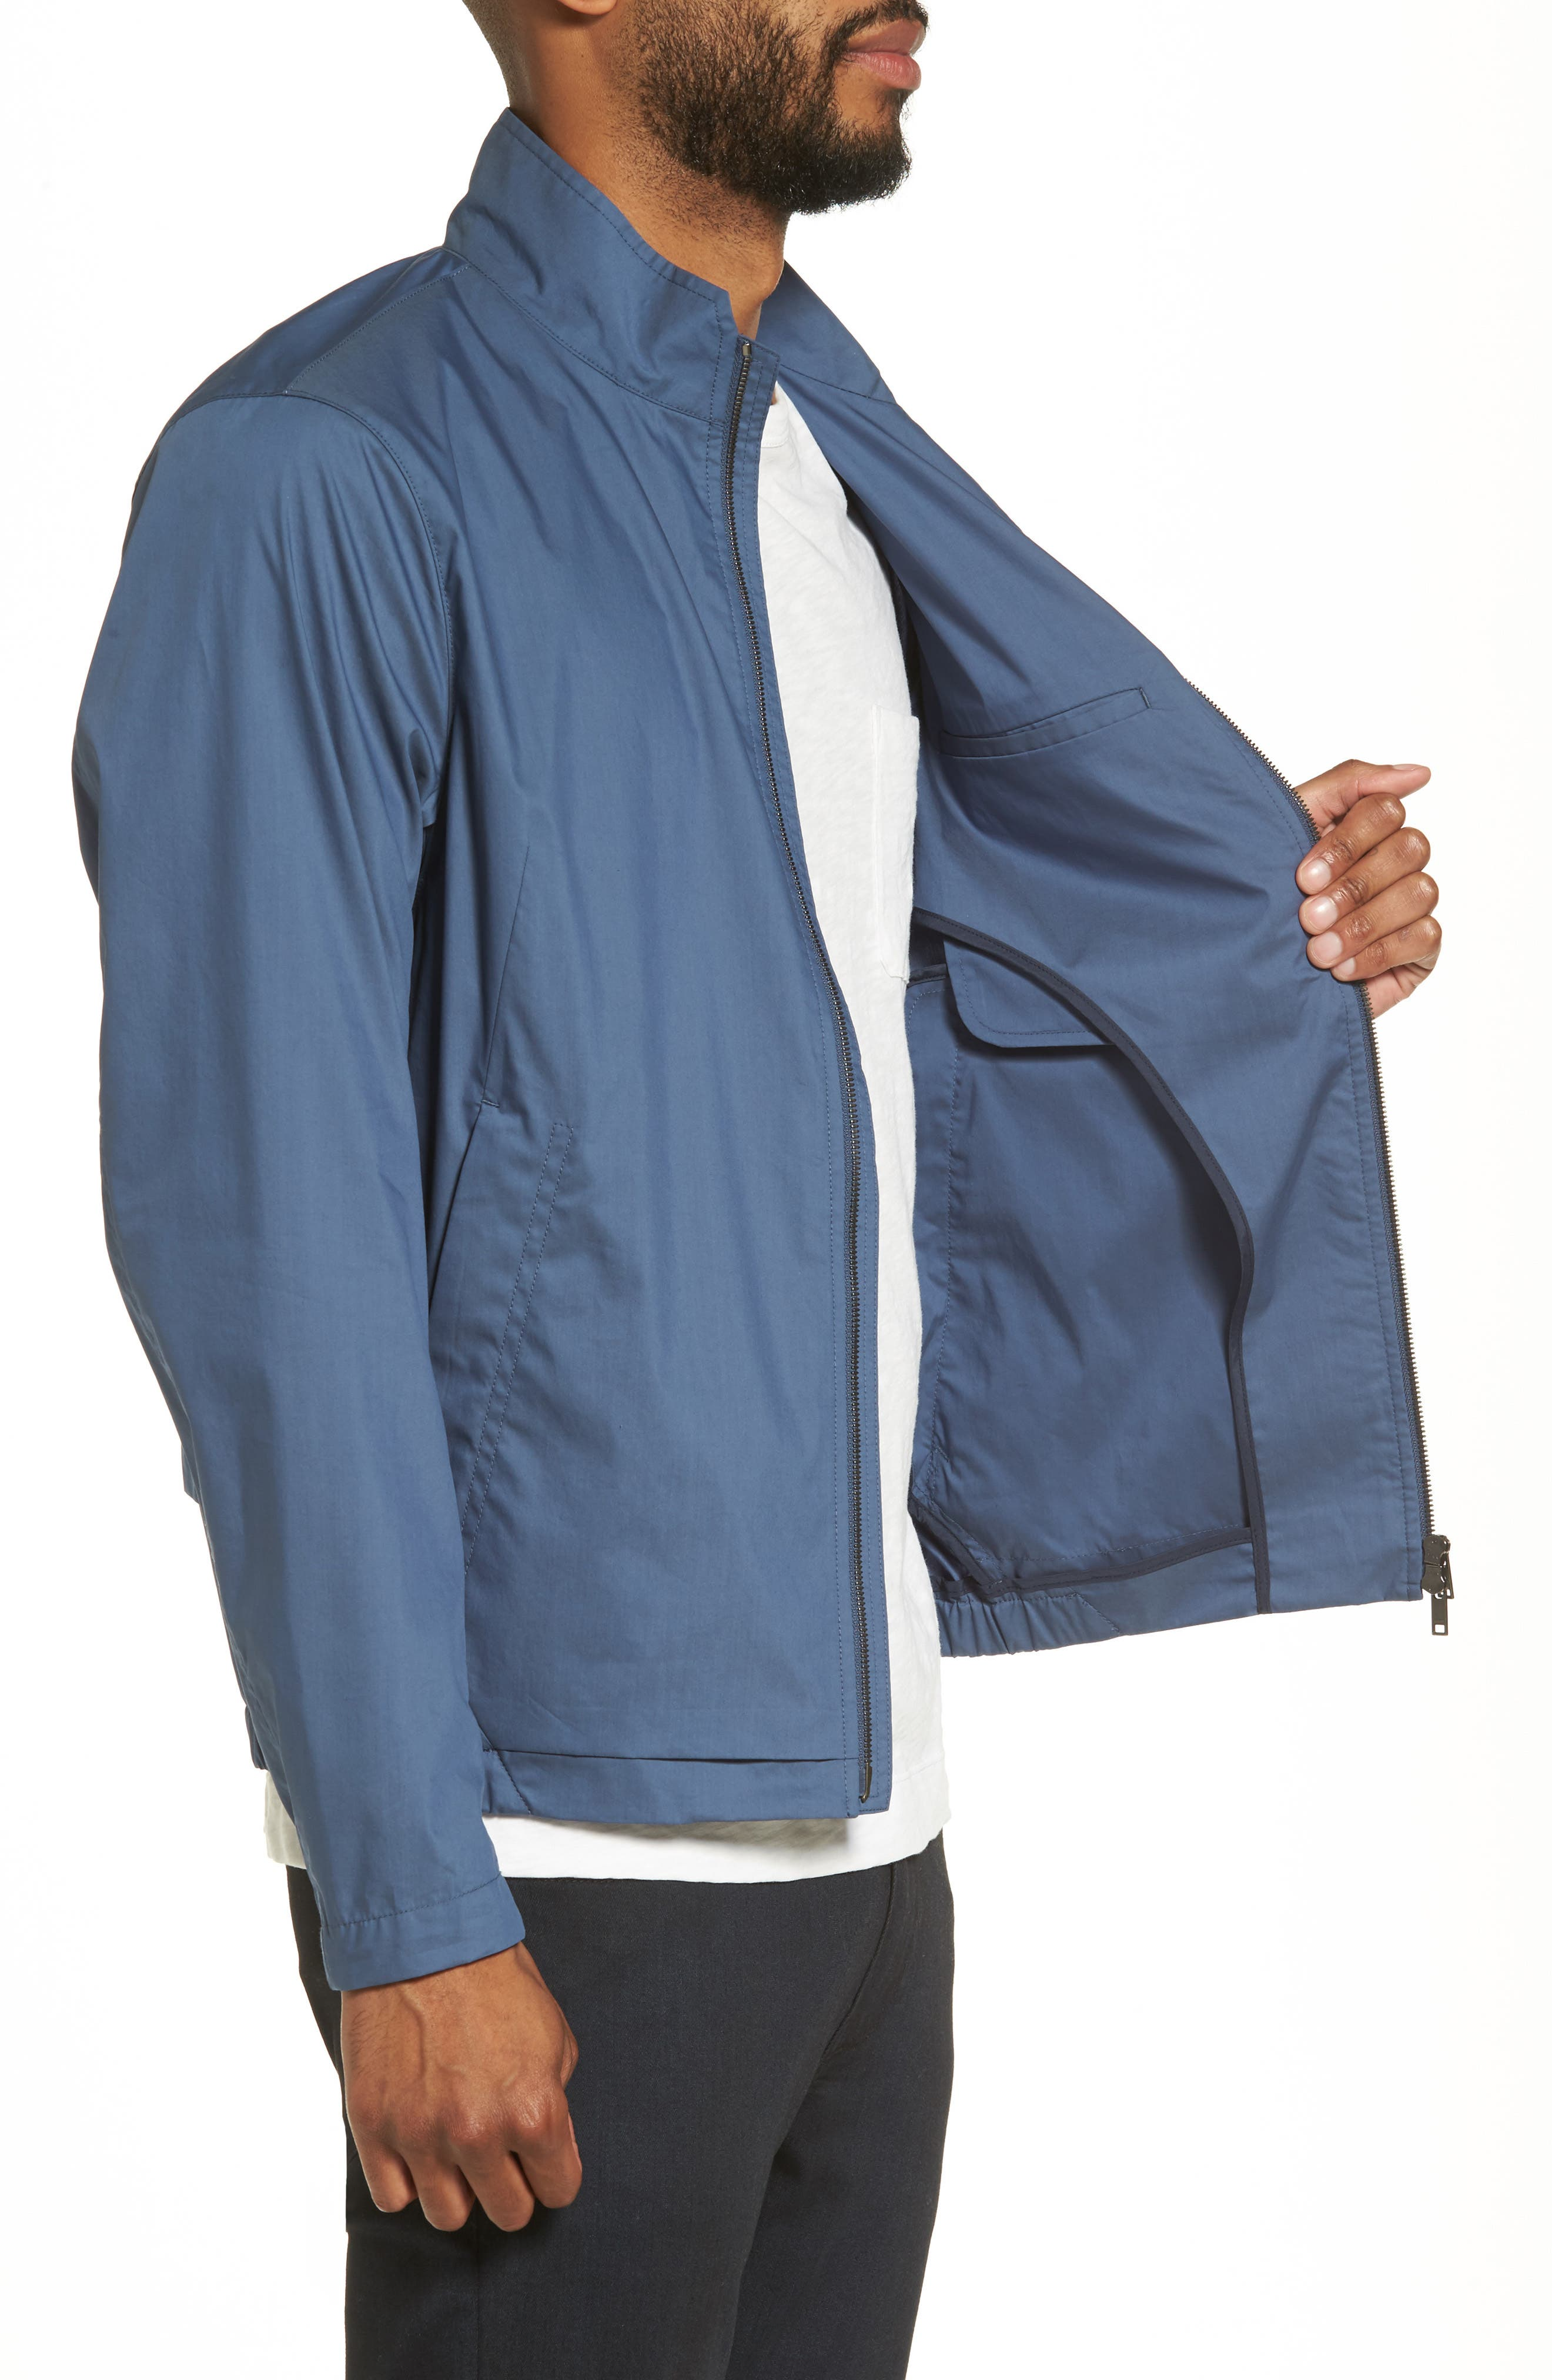 Draftbreak Tech Jacket,                             Alternate thumbnail 3, color,                             400